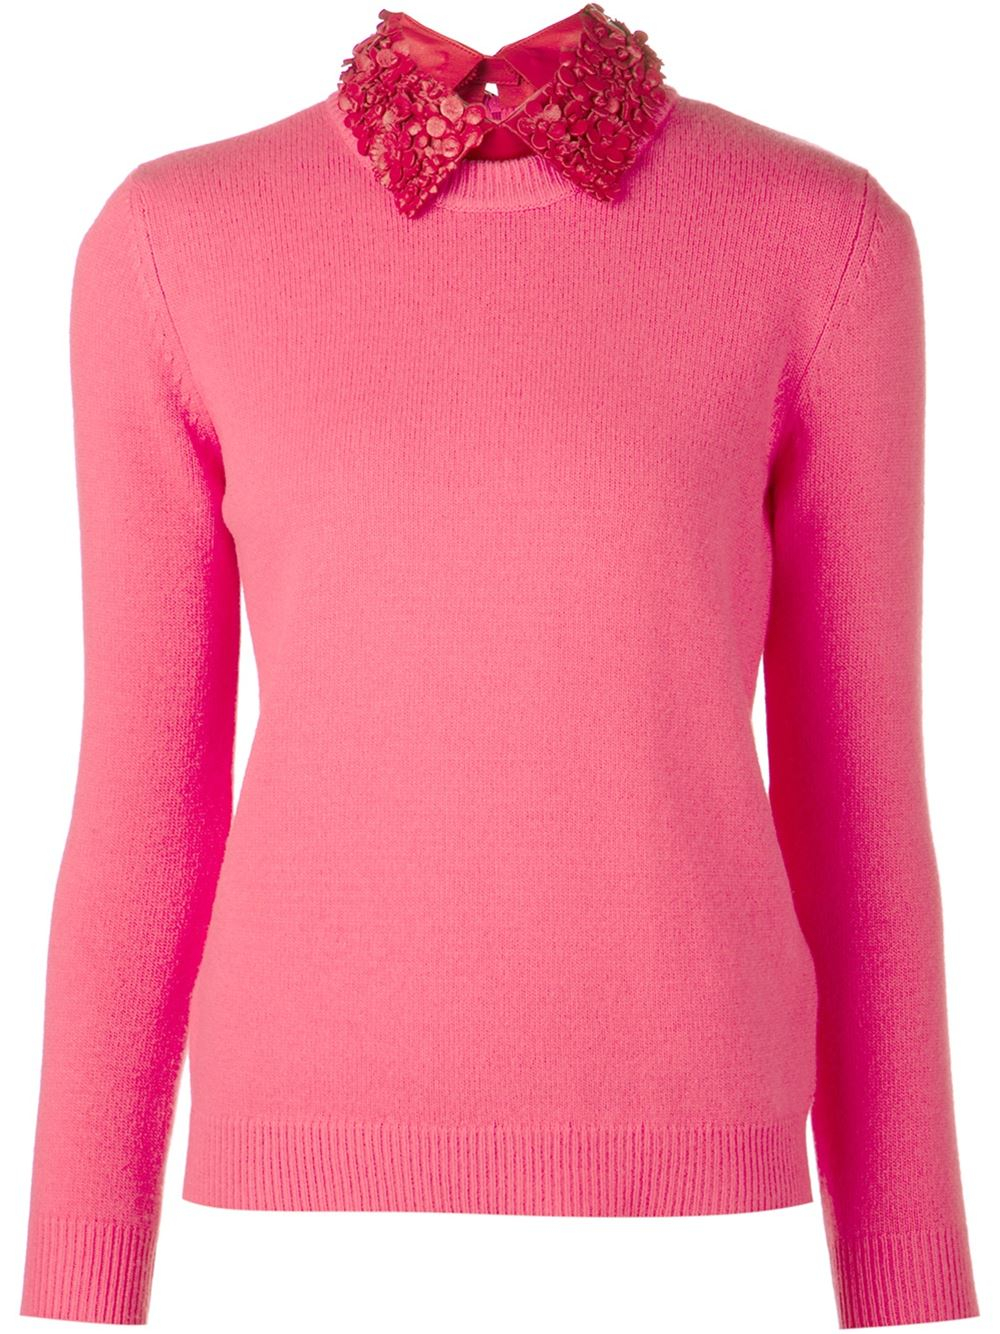 Valentino Applique Collar Sweater in Pink | Lyst